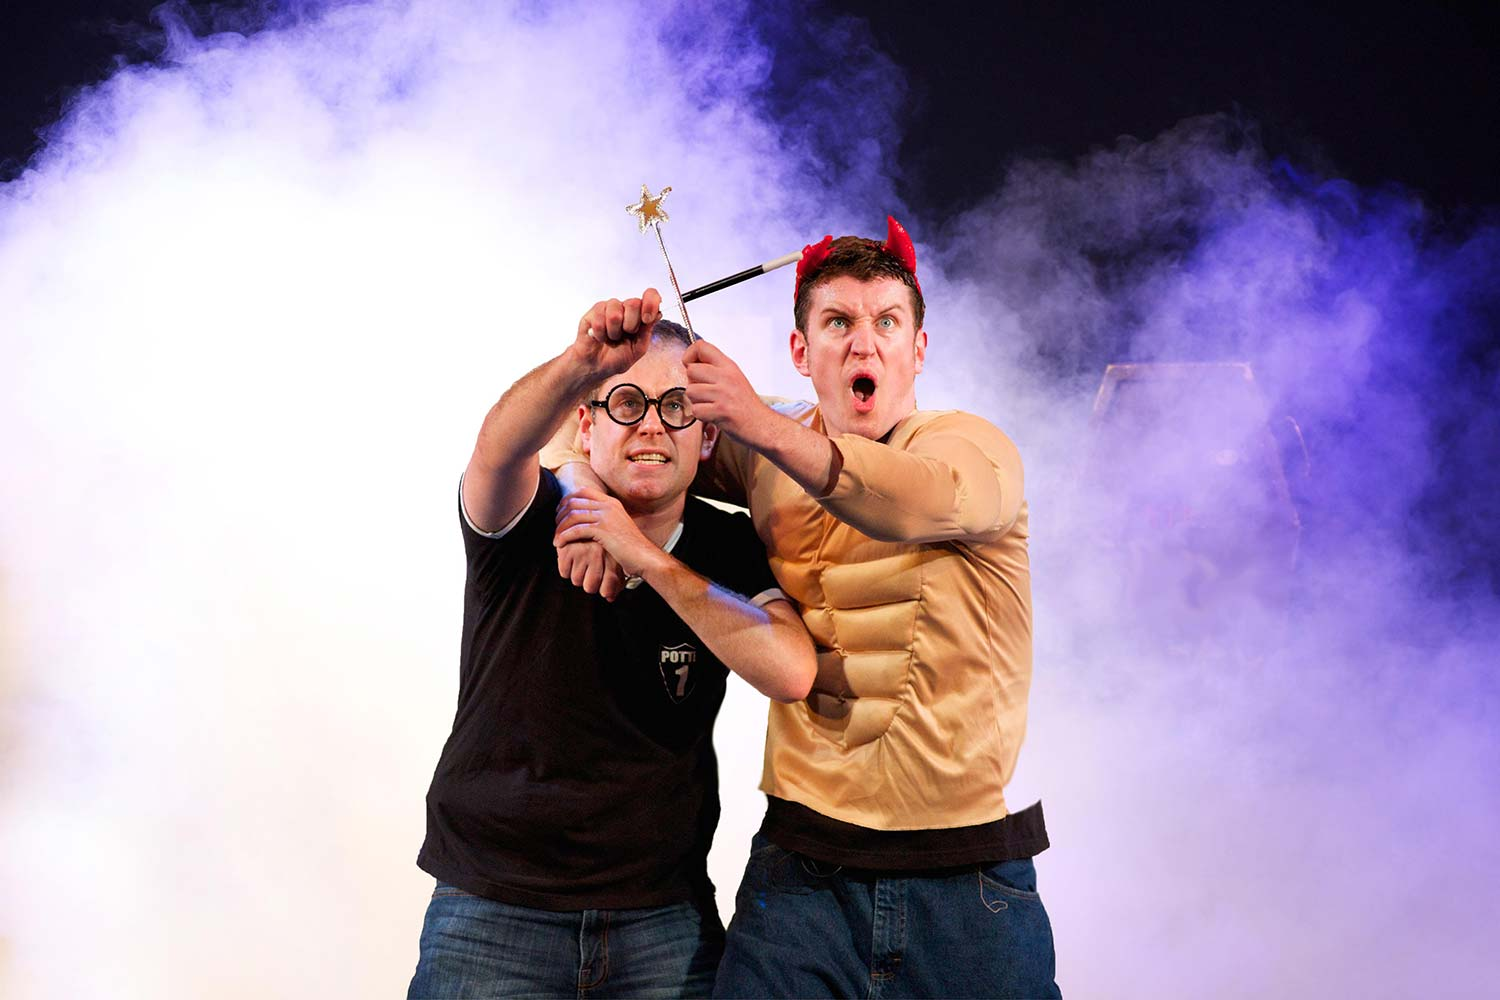 The two-man show condenses the seven book series into 90 minutes of hilarity.